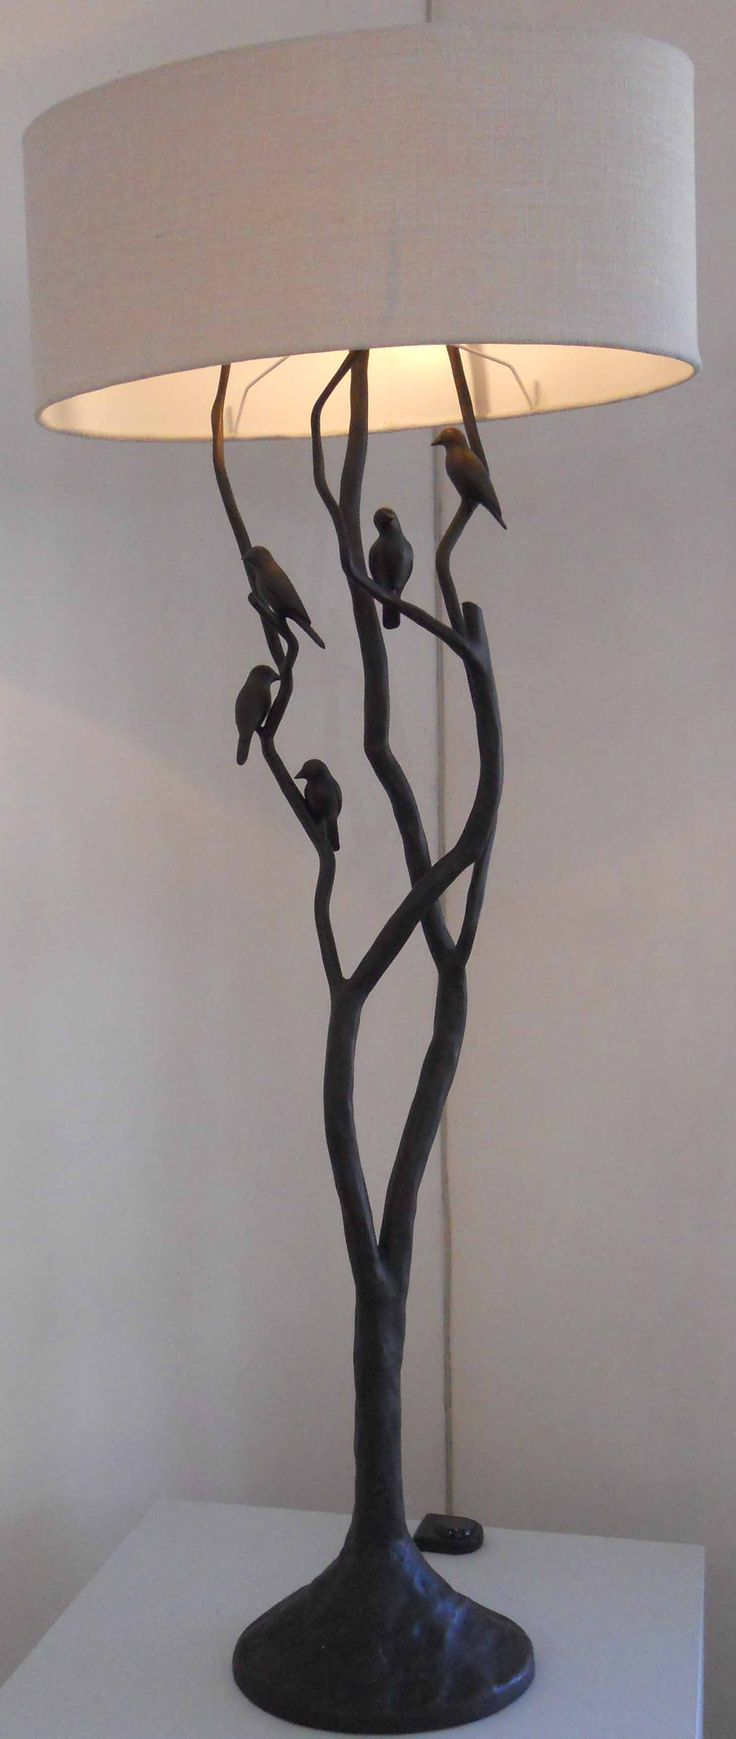 An original lamp by Trevor Opperman. For more please visit: www.finearts.co.za